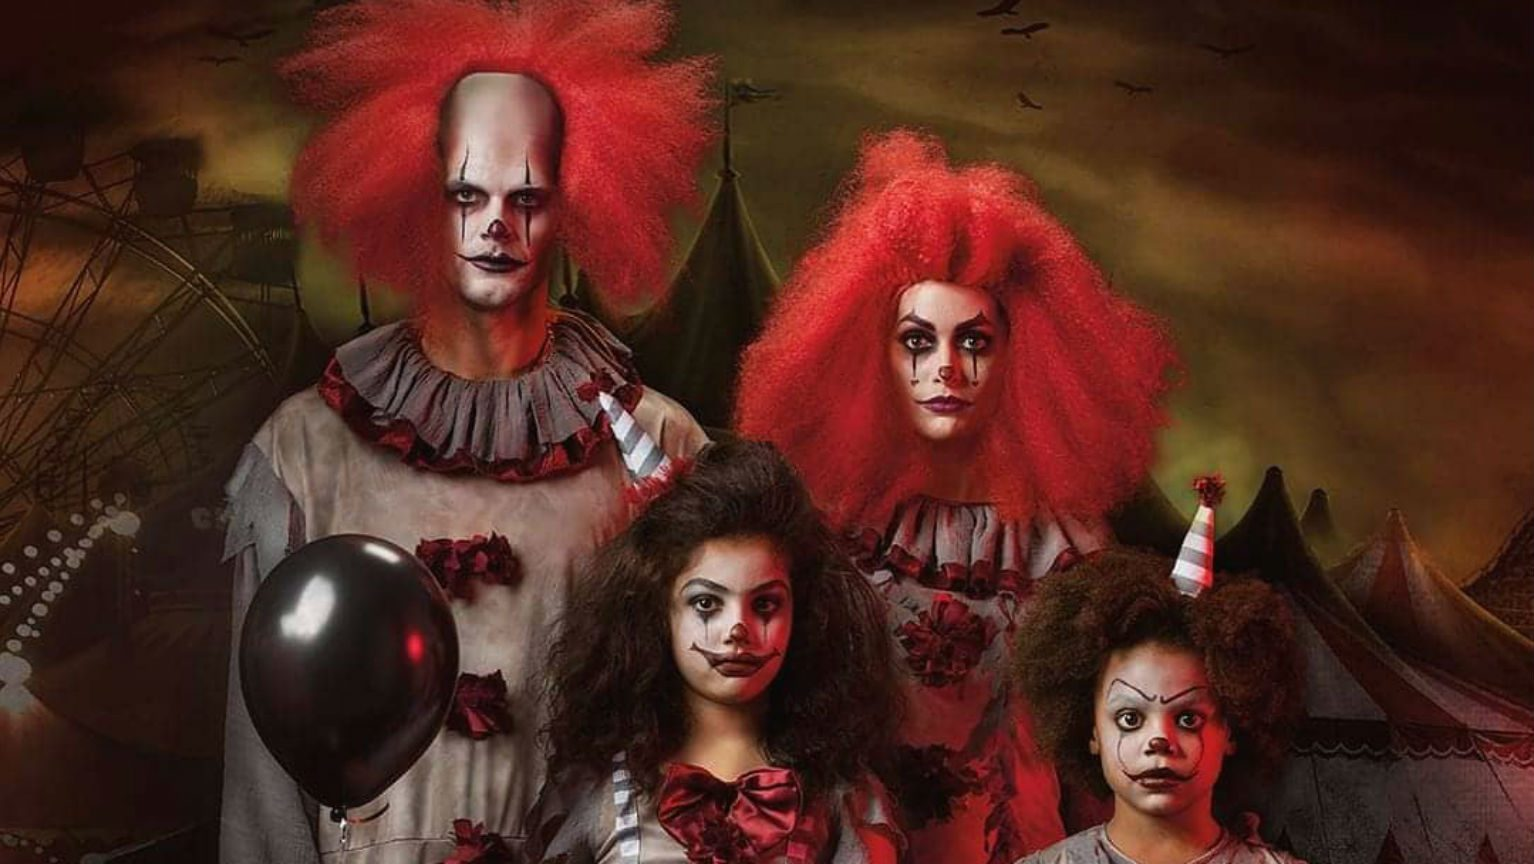 Pennywise costumes